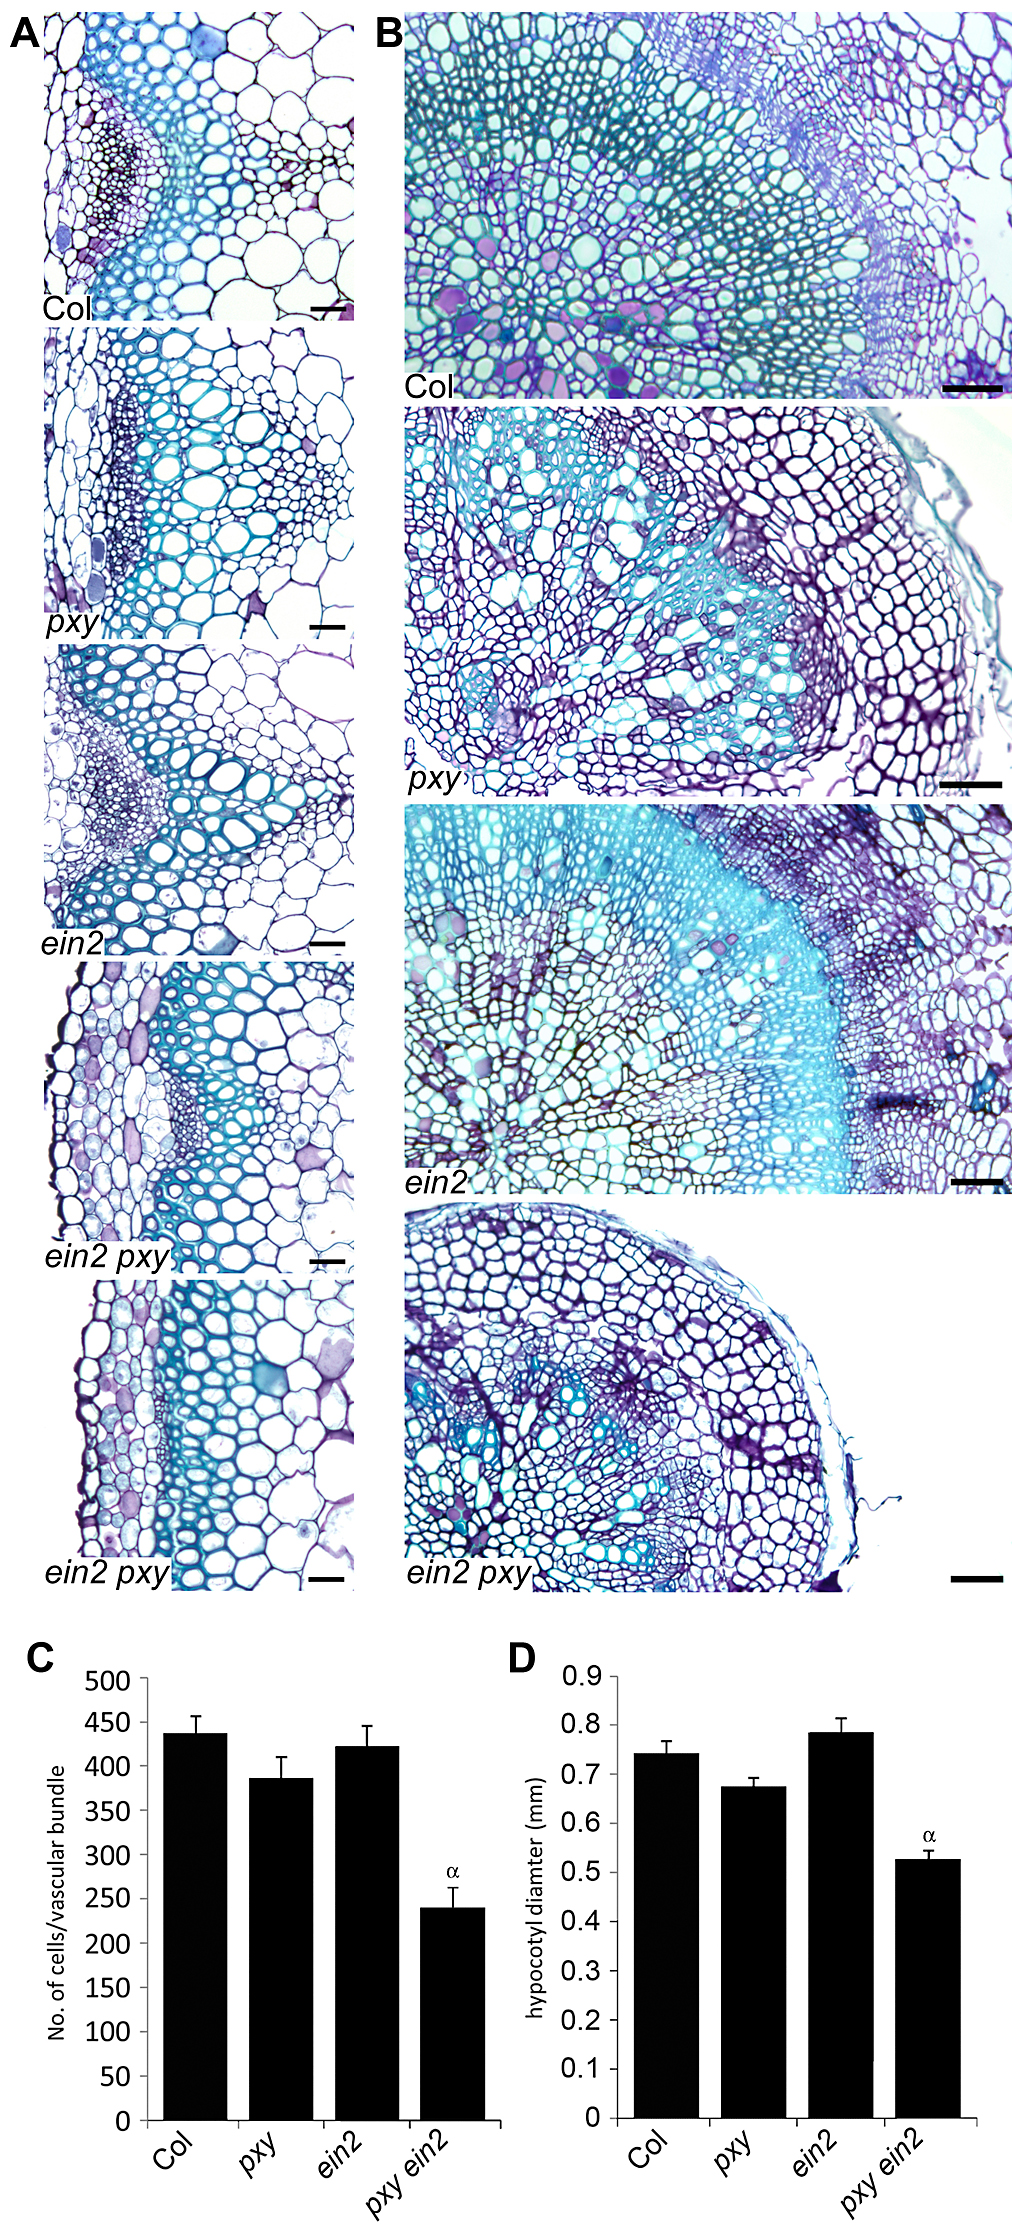 Analysis of vascular cell division in <i>ein2</i> and <i>pxy</i> mutant combinations.